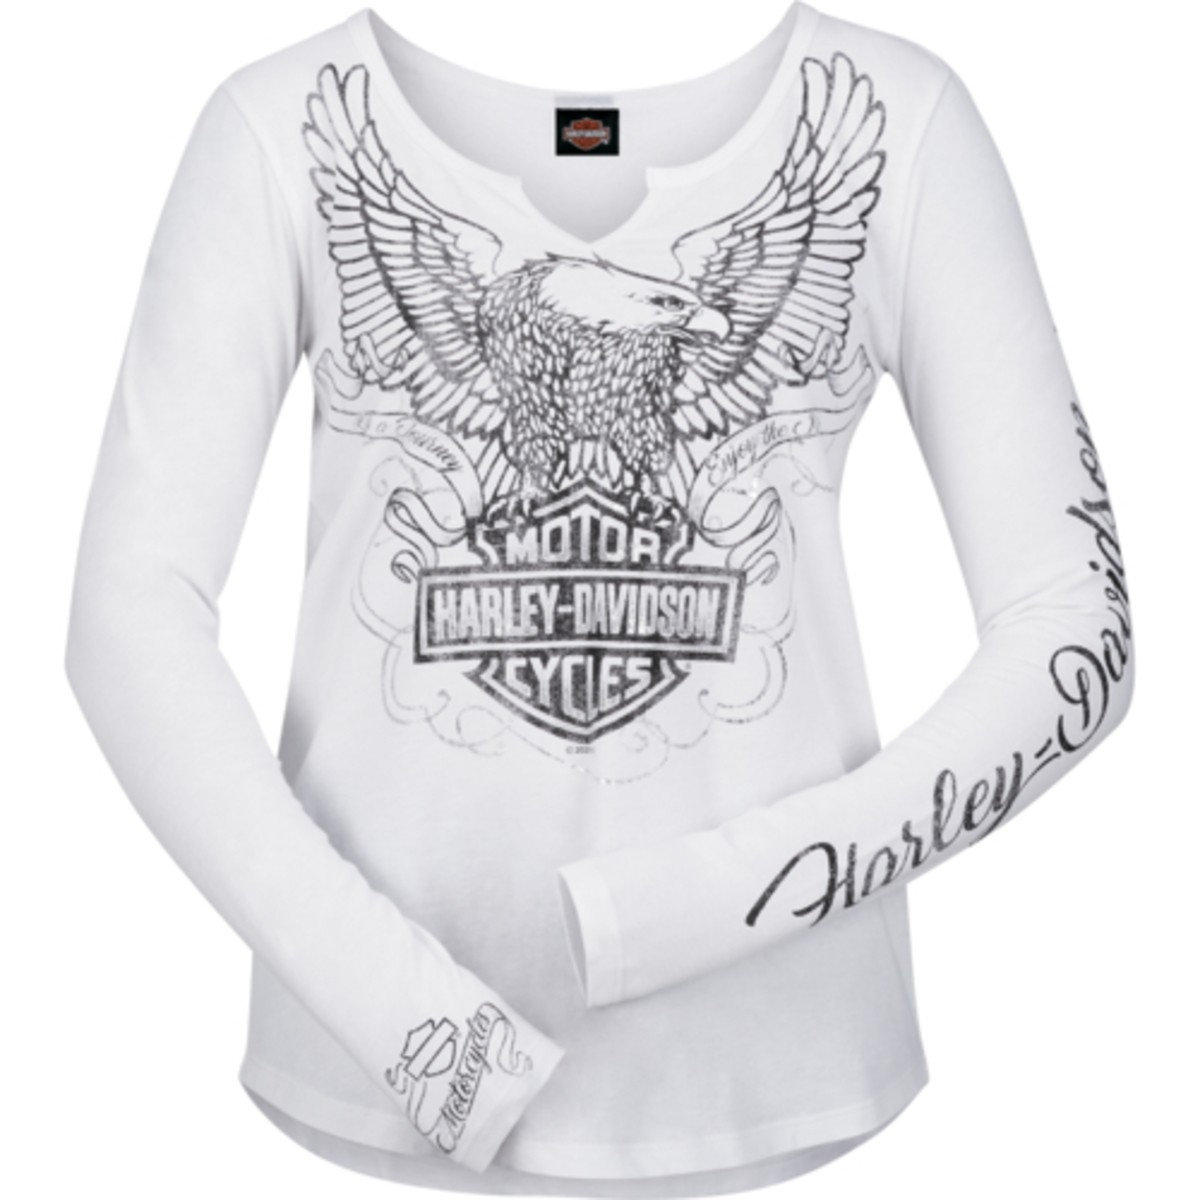 Women's White Long-Sleeve V-Neck Graphic T-Shirt - NAS Sigonella | Regal Edge